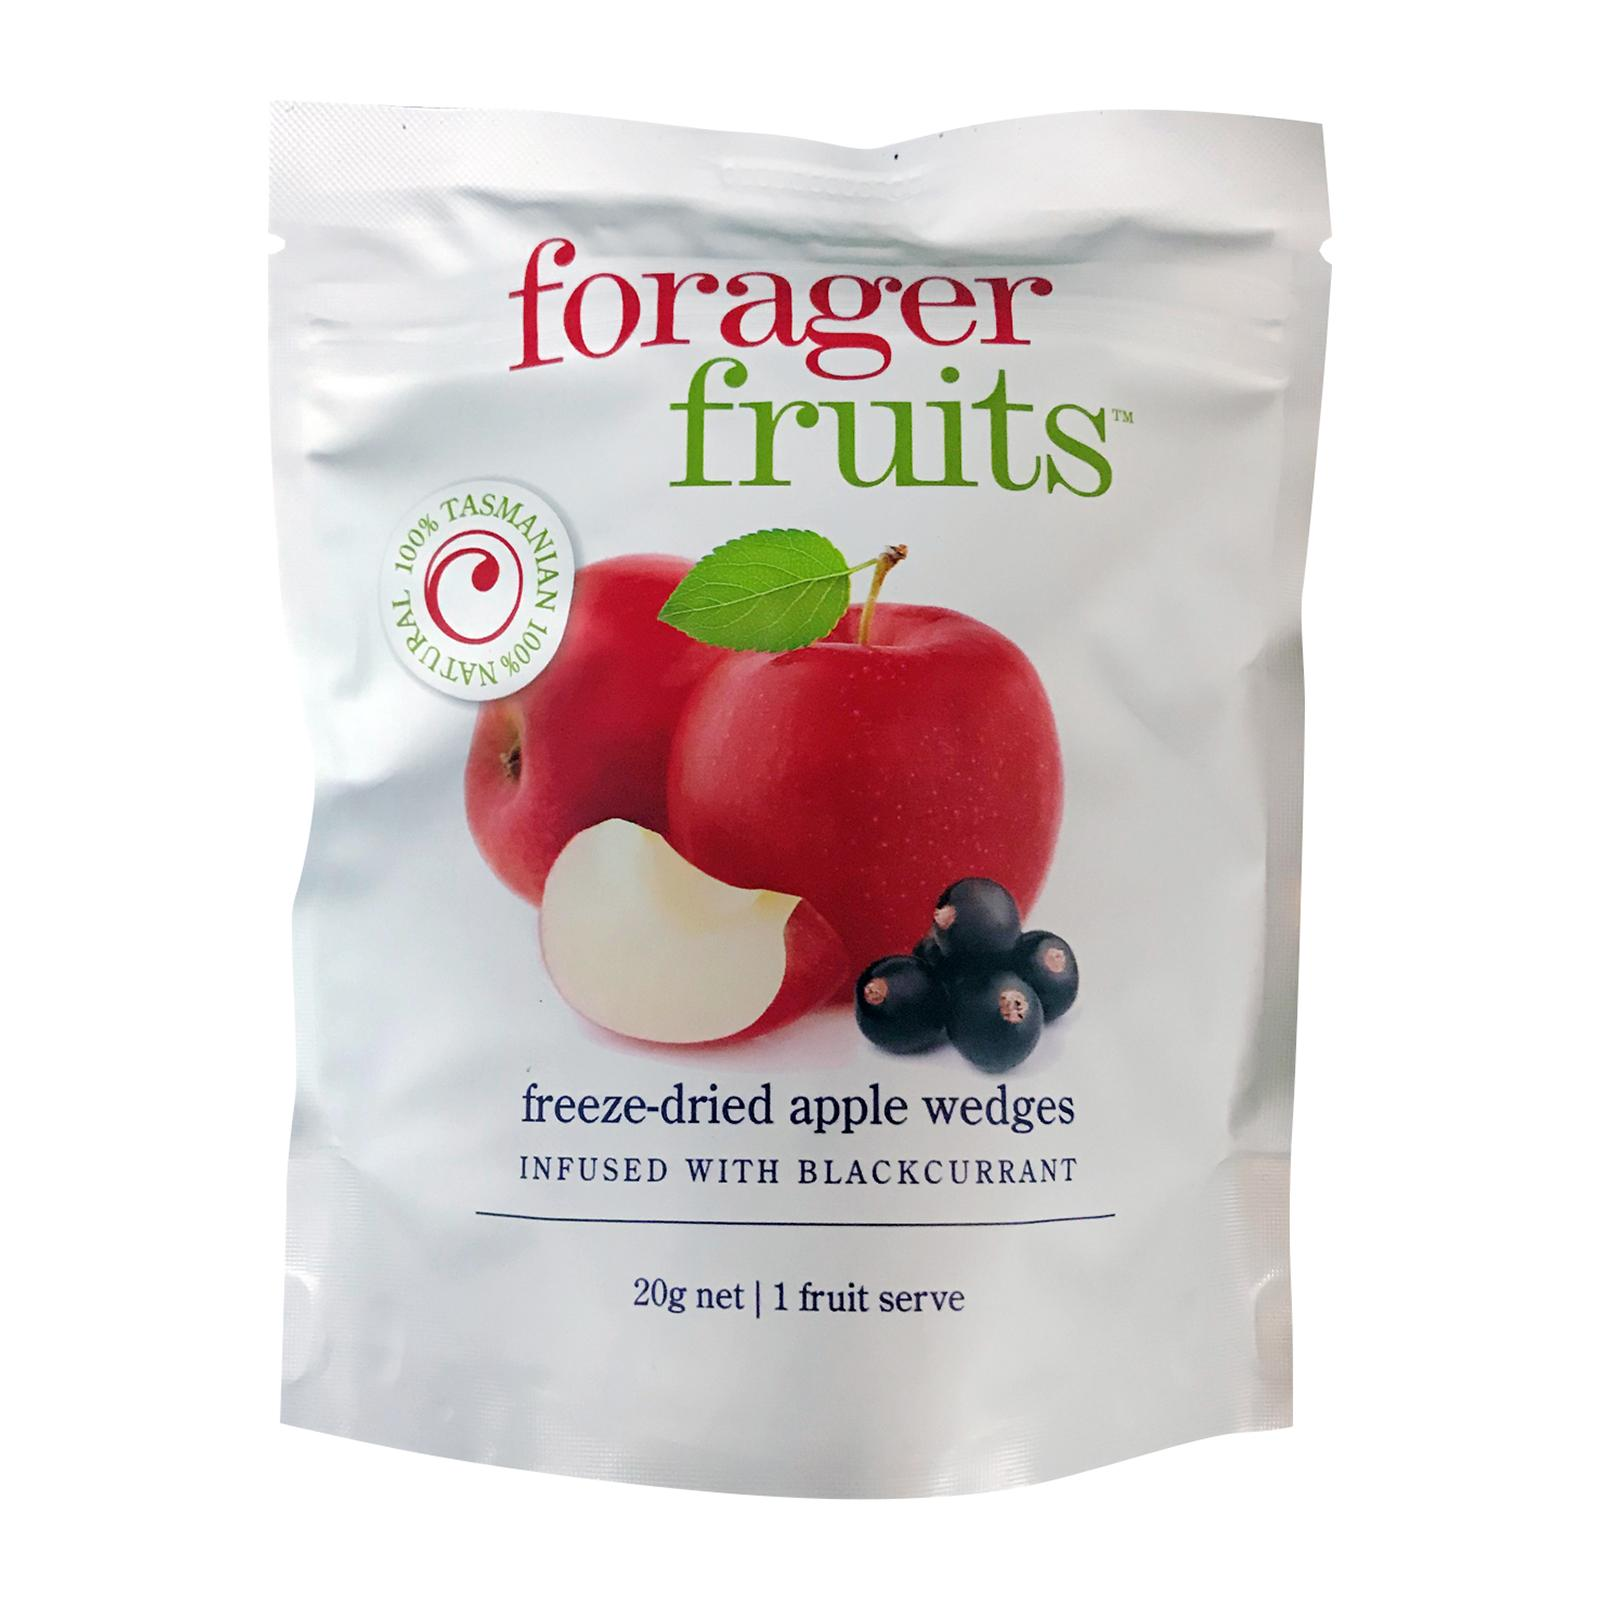 Forager Fruits Freeze Dried Apple Wedges Infused with Blackcurrant